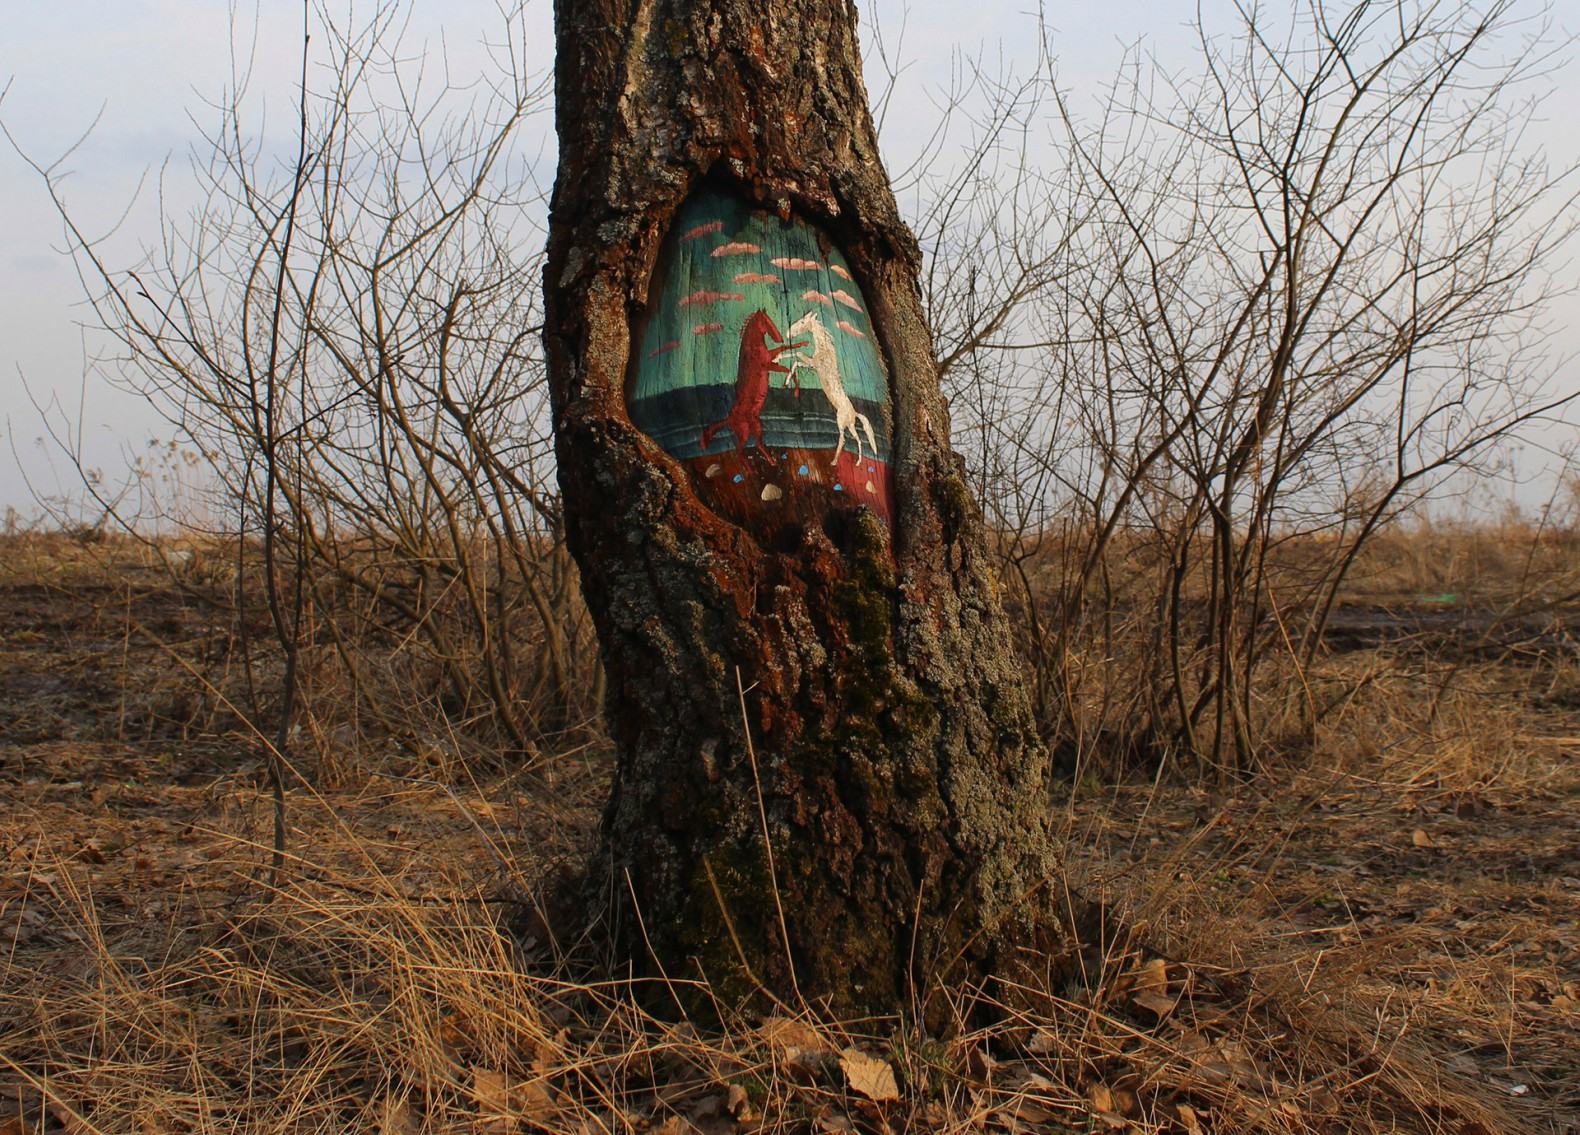 Russian artist paints magical fairytale artworks onto tree trunks